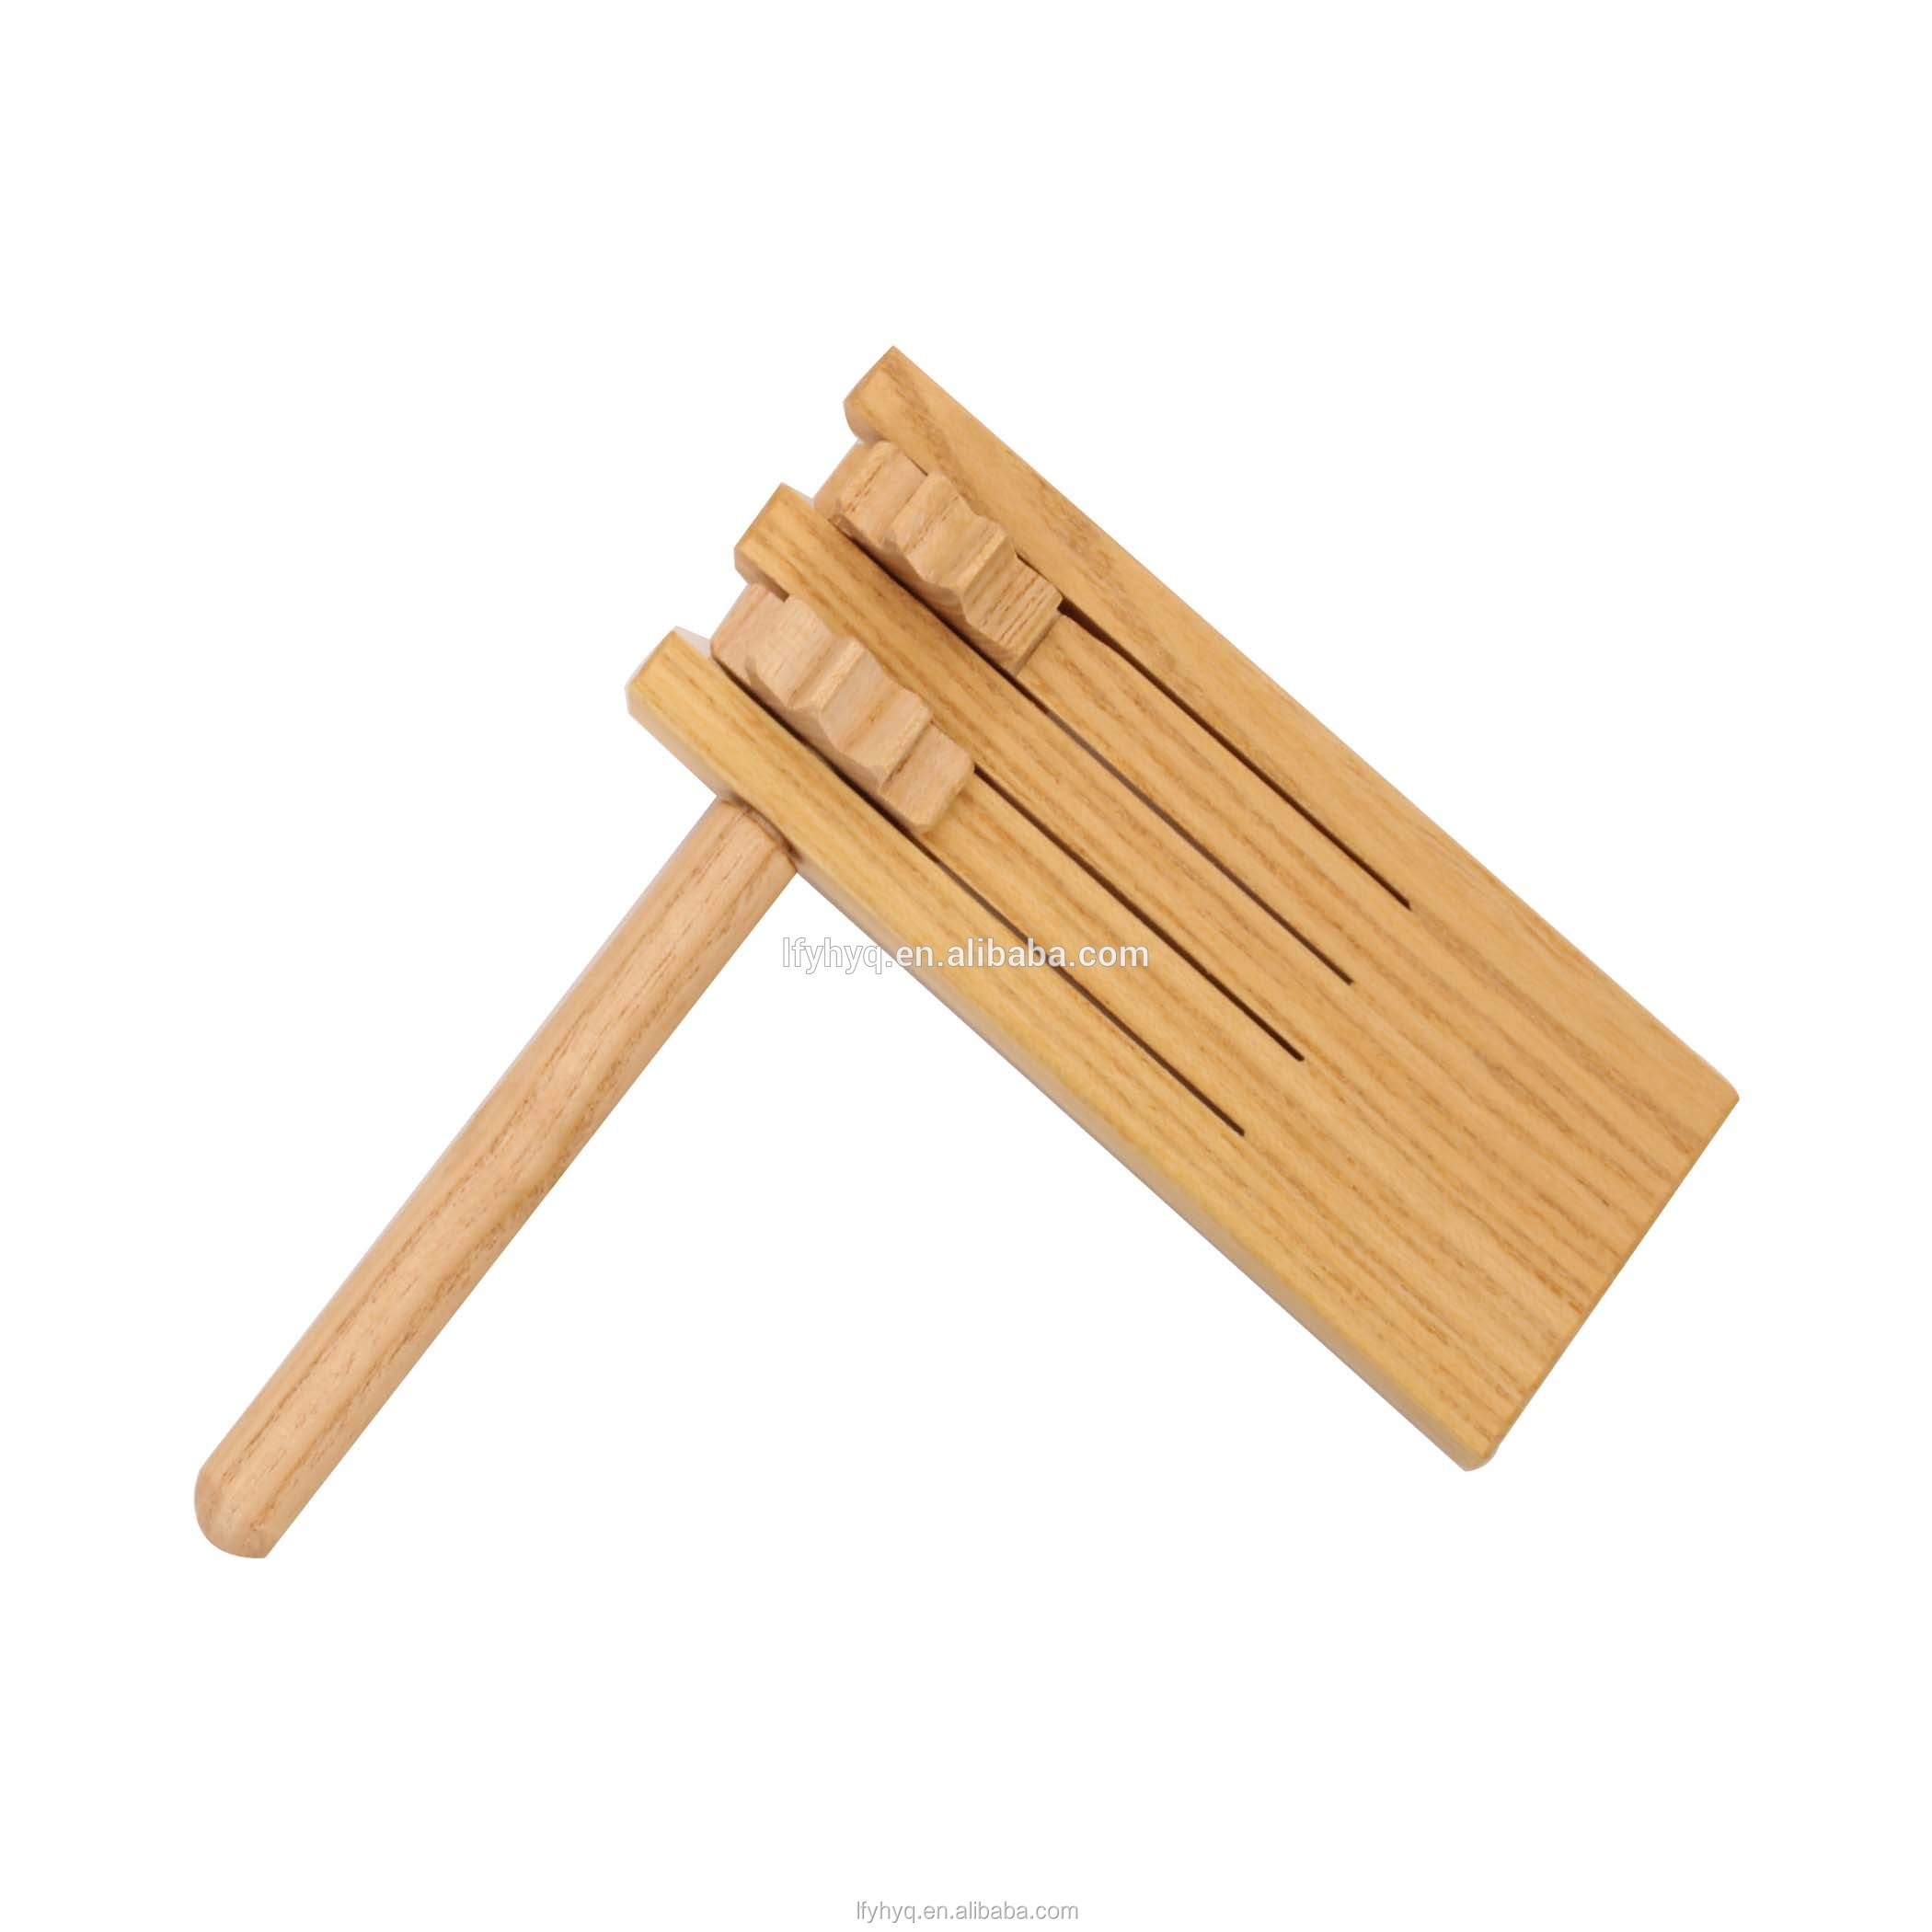 Education instrument wood ratchet musical accessories